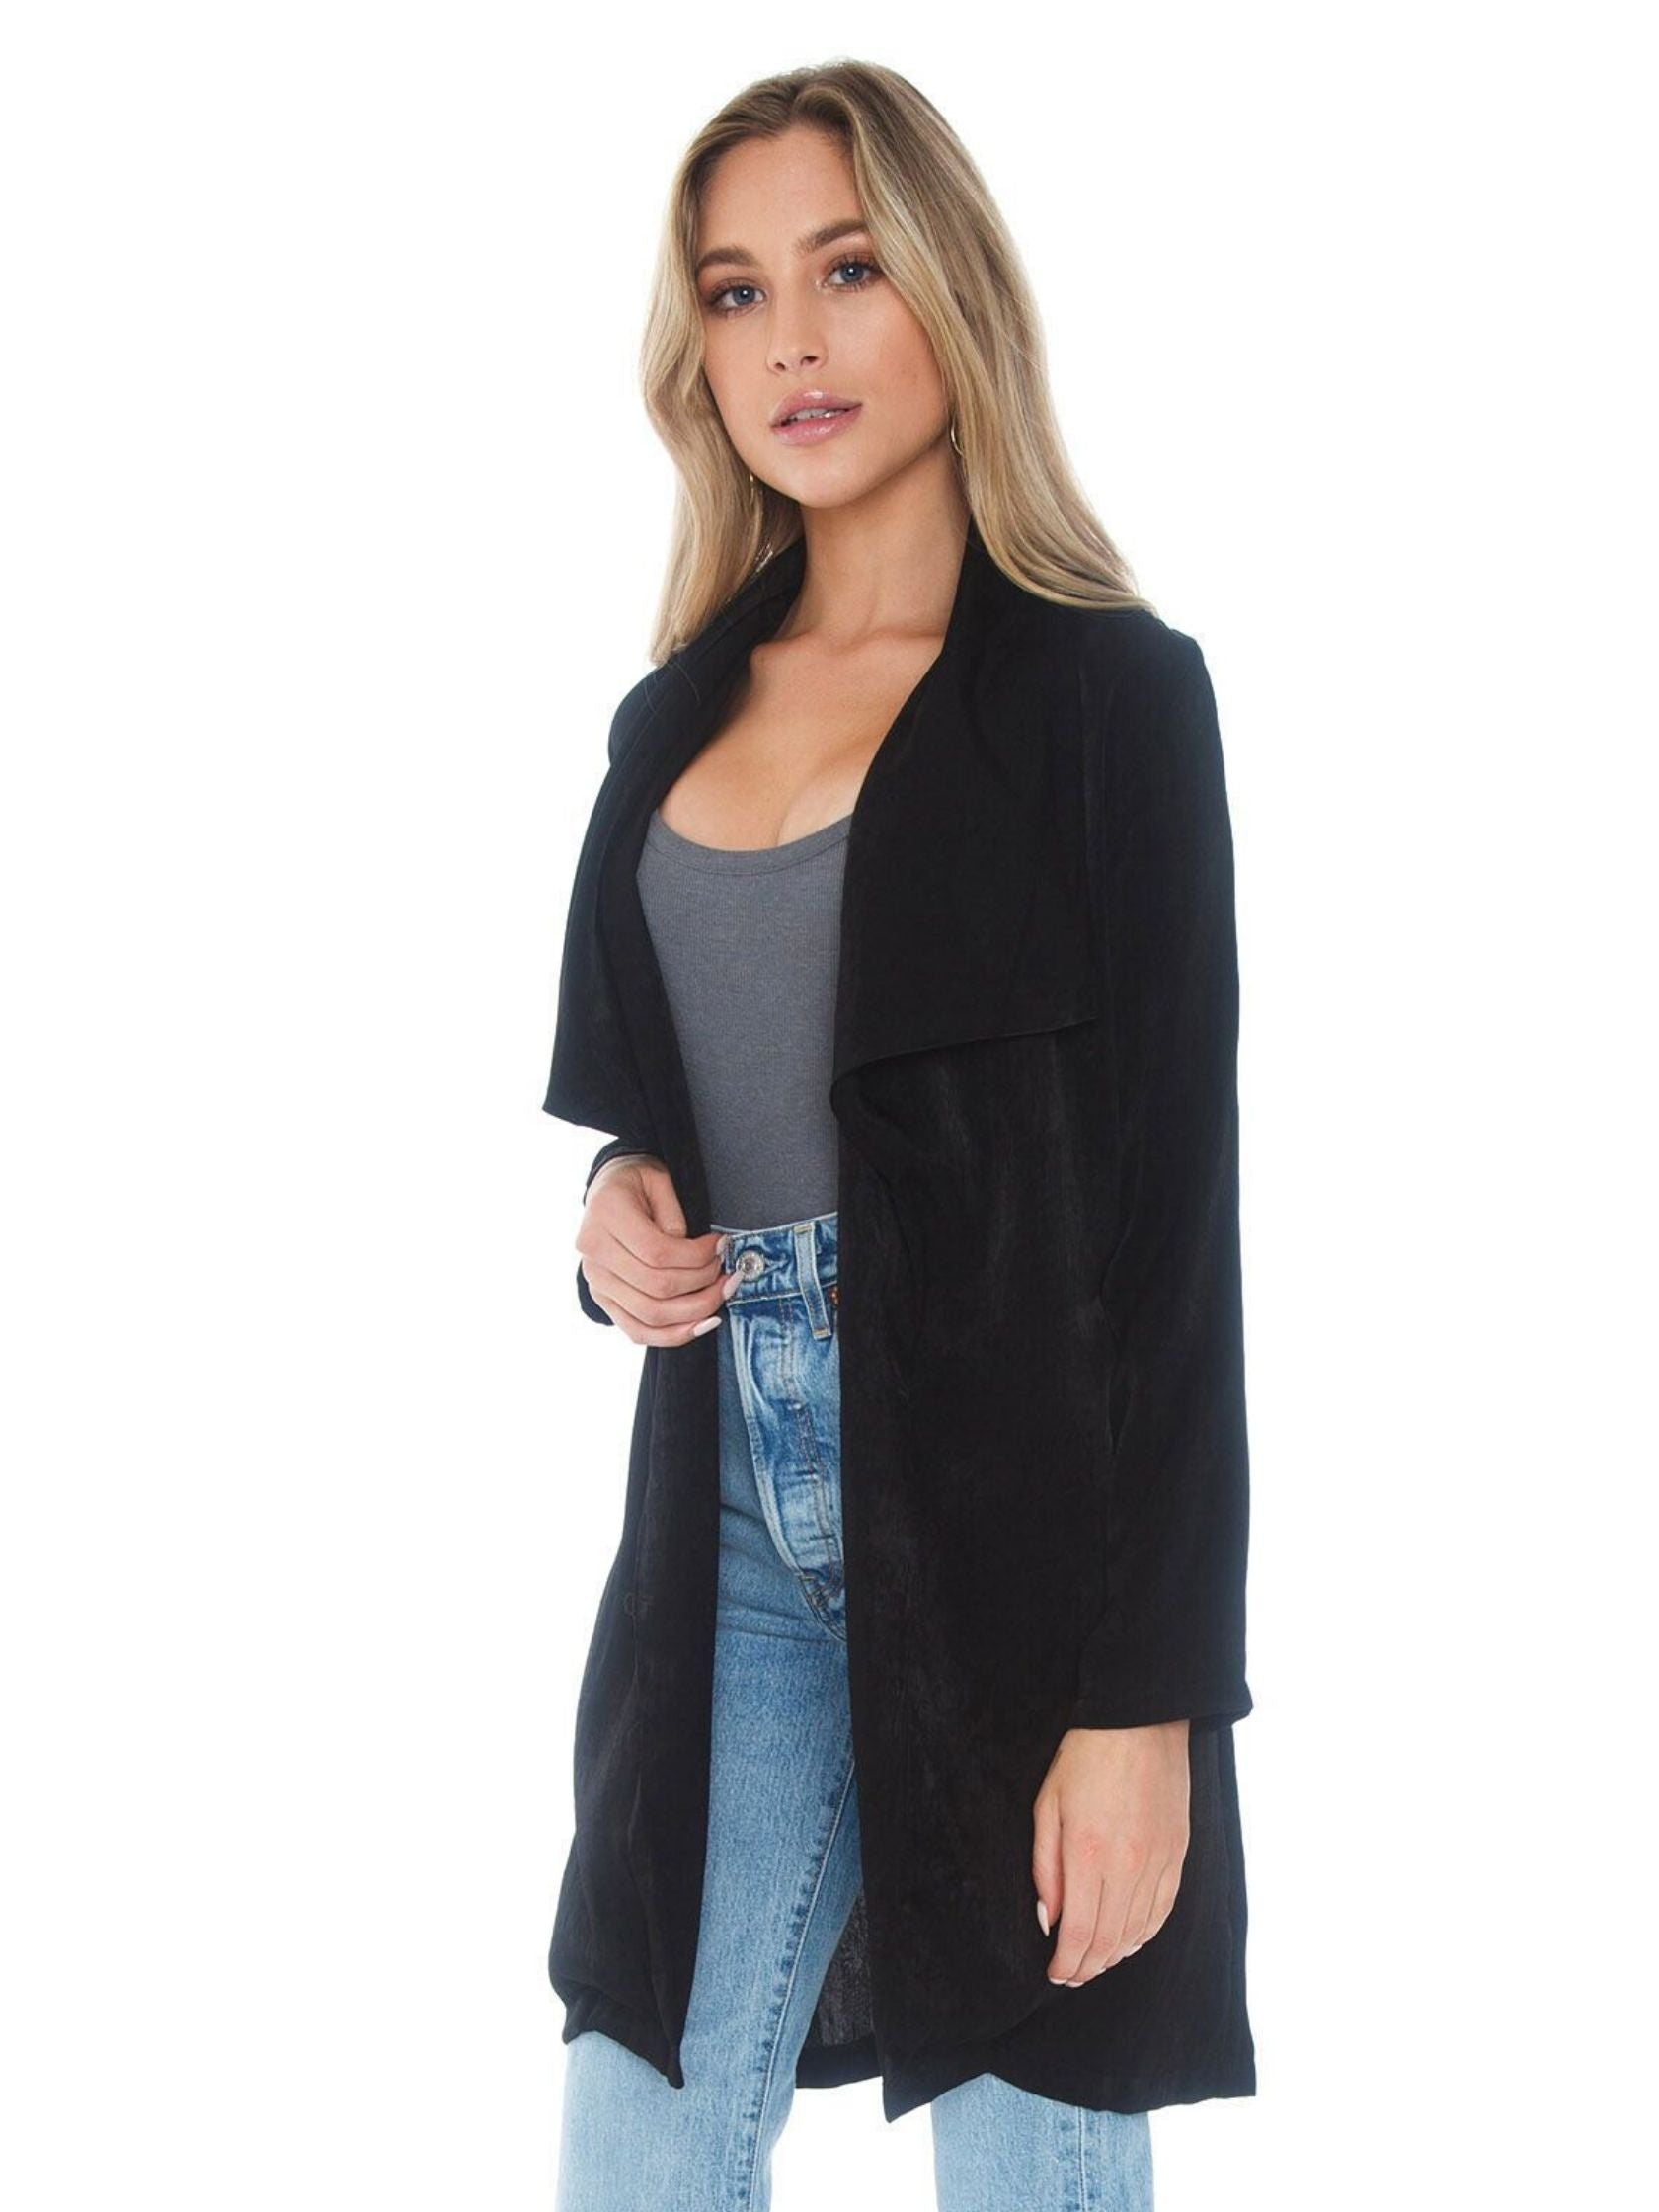 Women wearing a jacket rental from SAGE THE LABEL called Still The One Wrap Coat